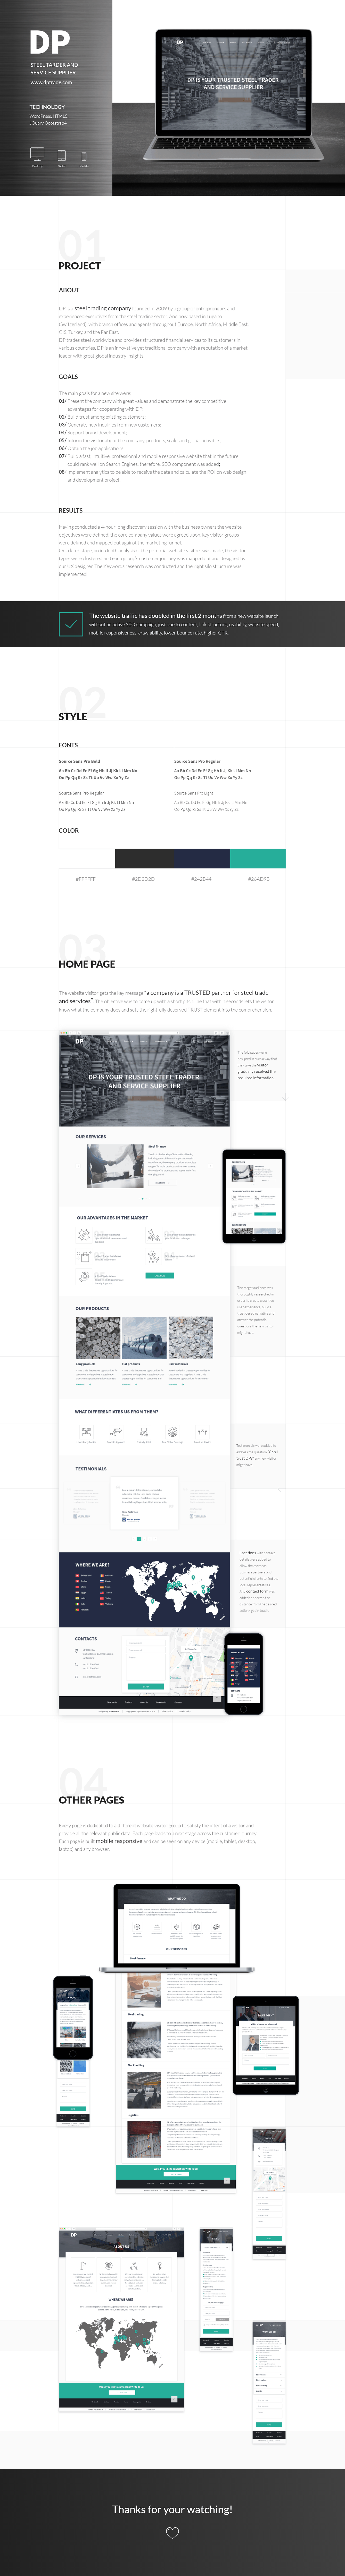 Case Study for Web Design Project for Swiss steel trader DP Trade